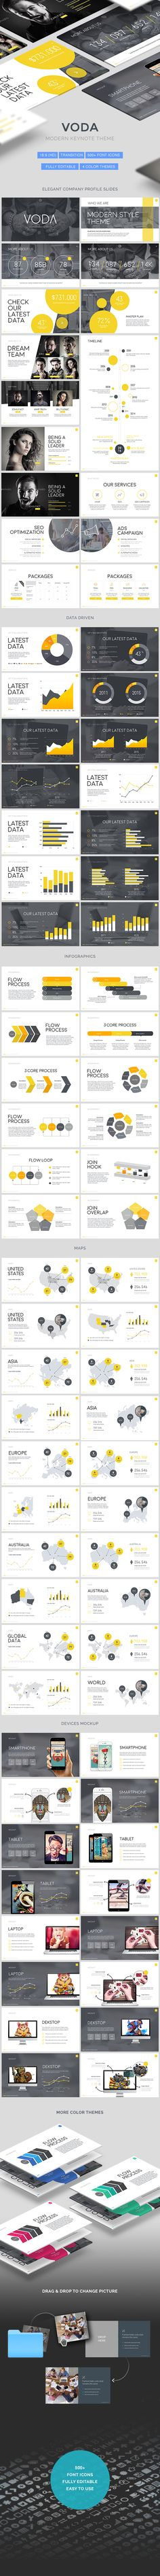 Buy Voda - Creative Powerpoint Template by Slidehack on GraphicRiver. WATCH DEMO: Looking for an Effective, Modern, and Easy Customable Presentation? Your idea deserves to be heard. Ui Design, Keynote Design, Slide Design, Brochure Design, Layout Design, Keynote Presentation, Presentation Deck, Presentation Templates, Marketing Presentation